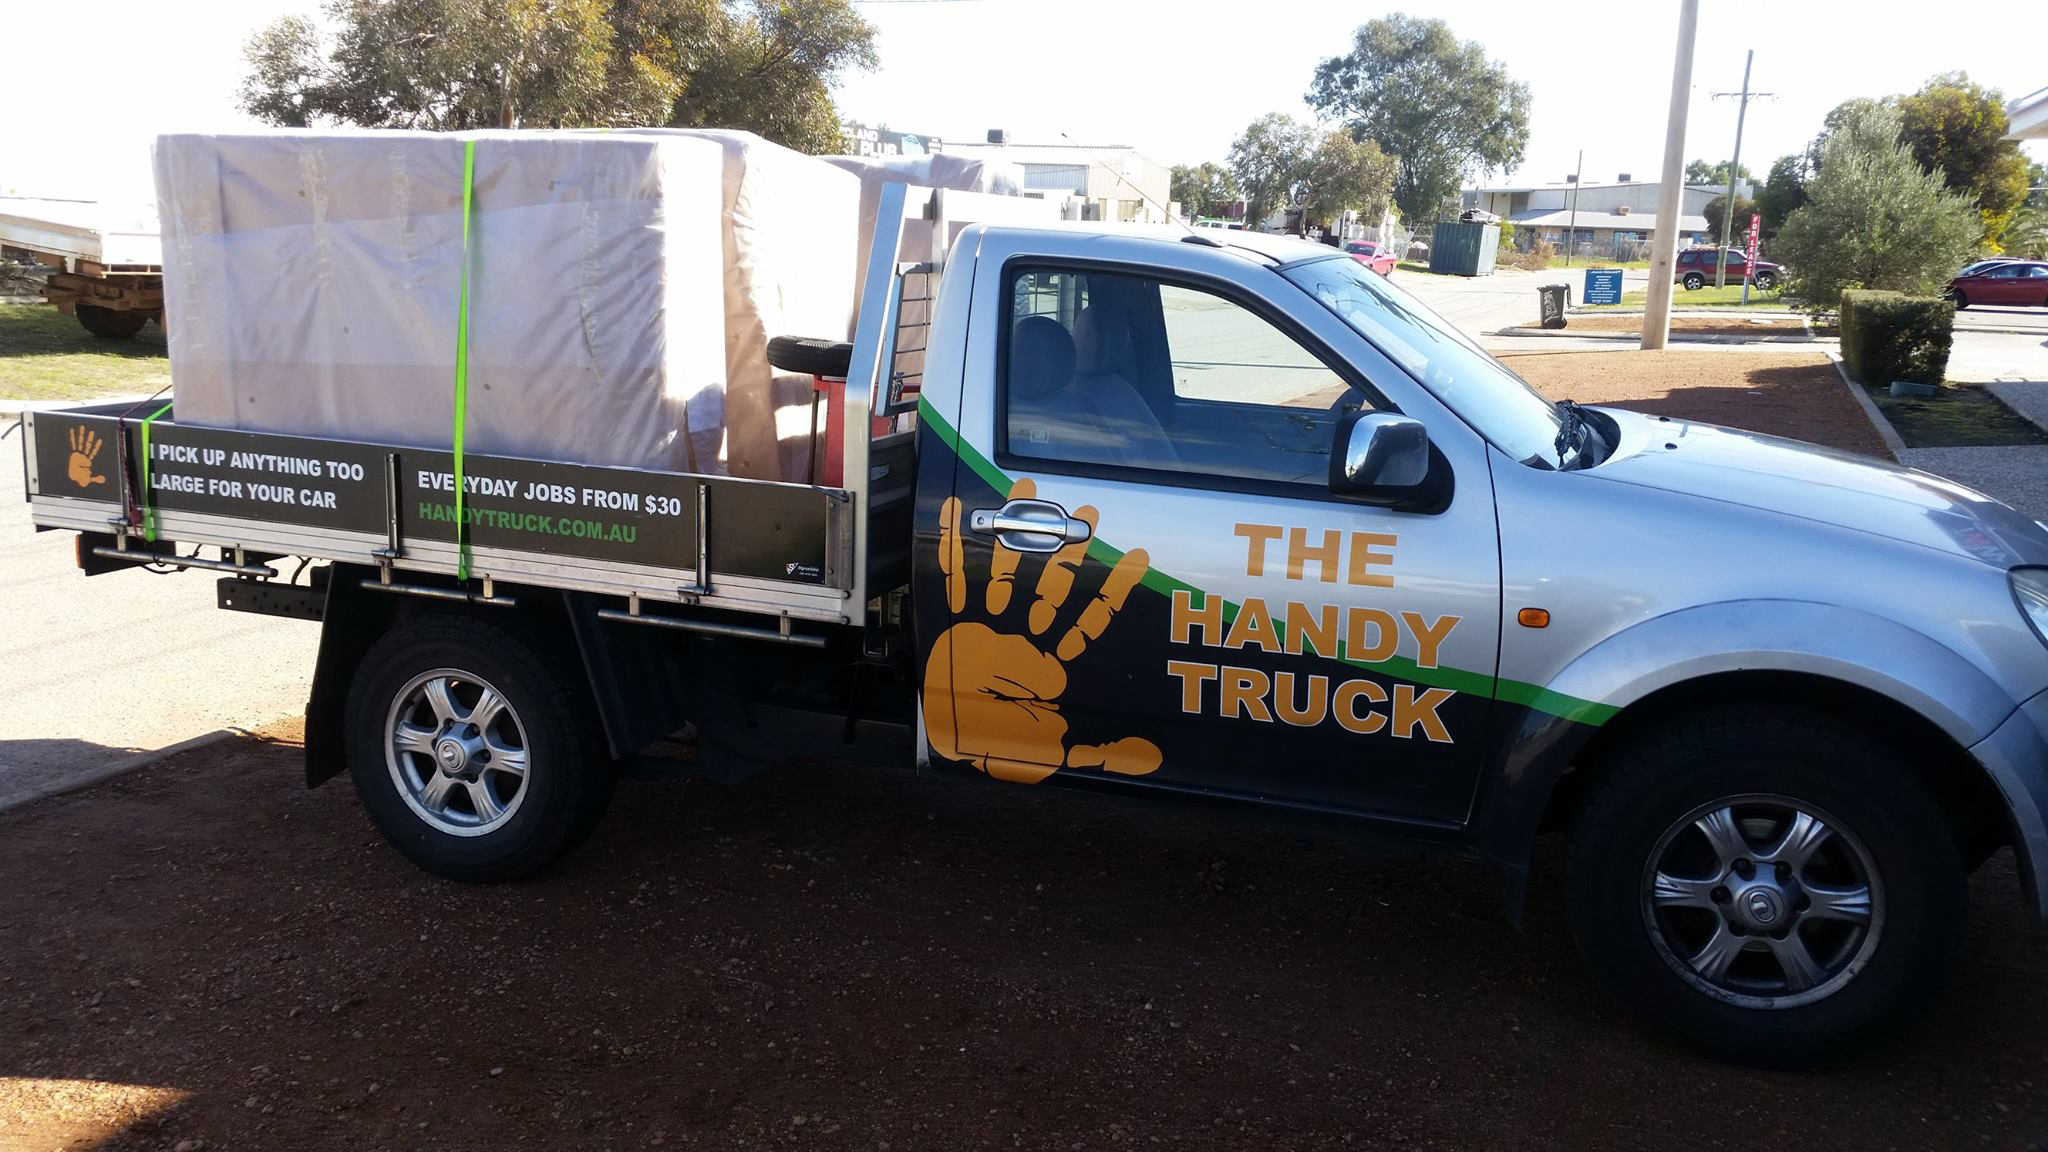 Today we picked up this large box and moved it from Osbourne Park to Cockburn. The Handy Truck is perfect for anything too large to fit in your car.